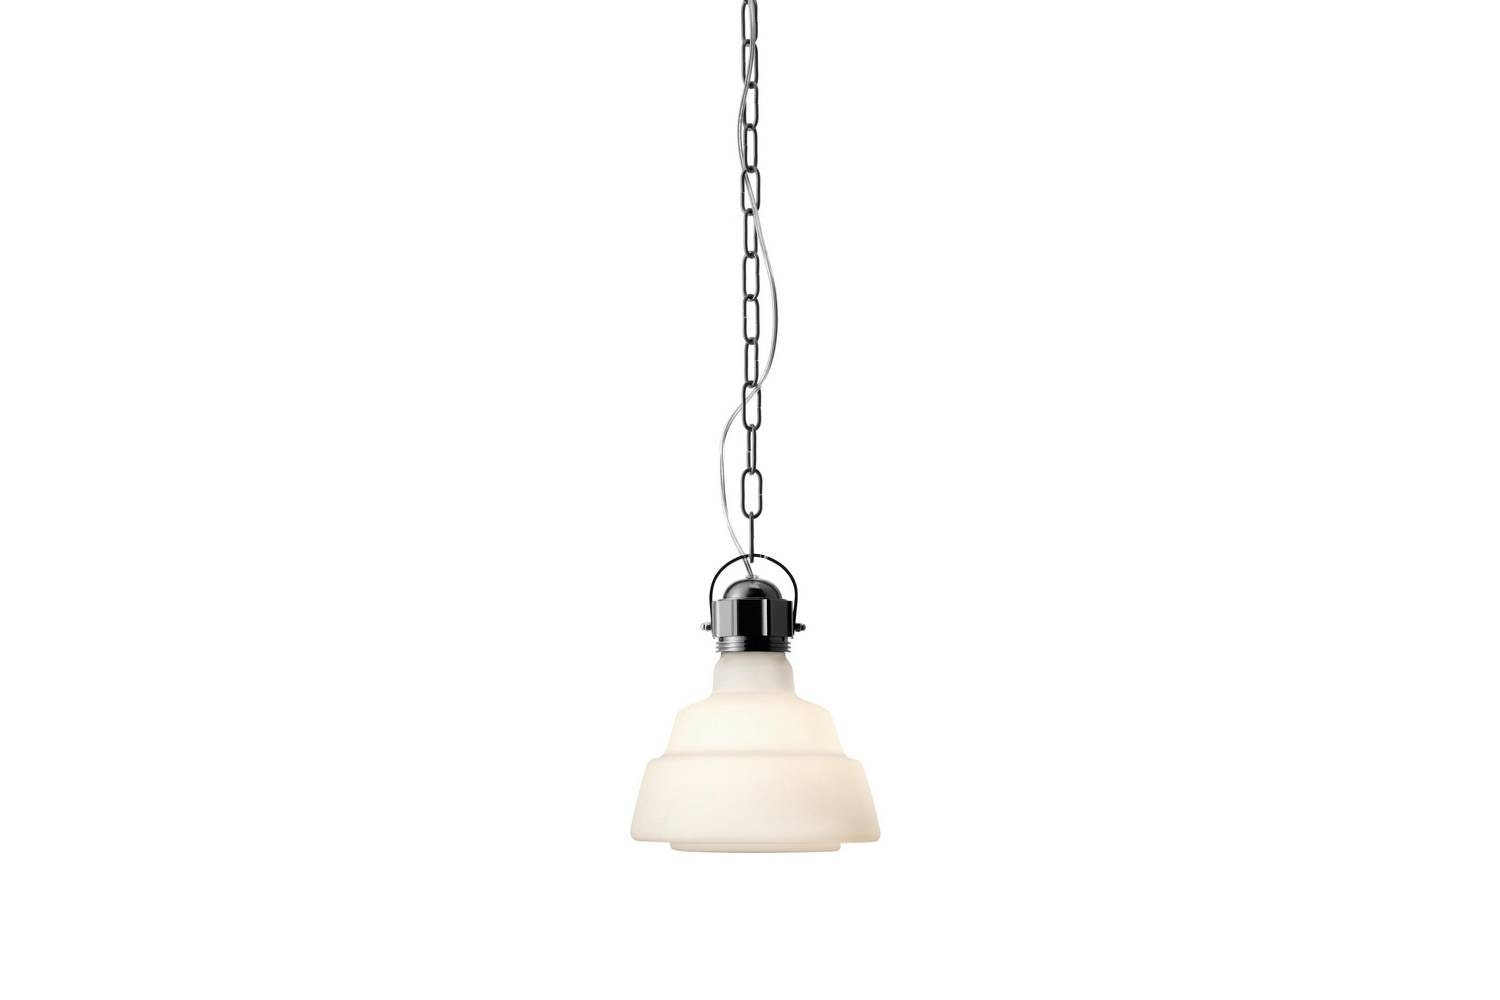 Glas Piccola Suspension Lamp by Successful Living from DIESEL for Foscarini